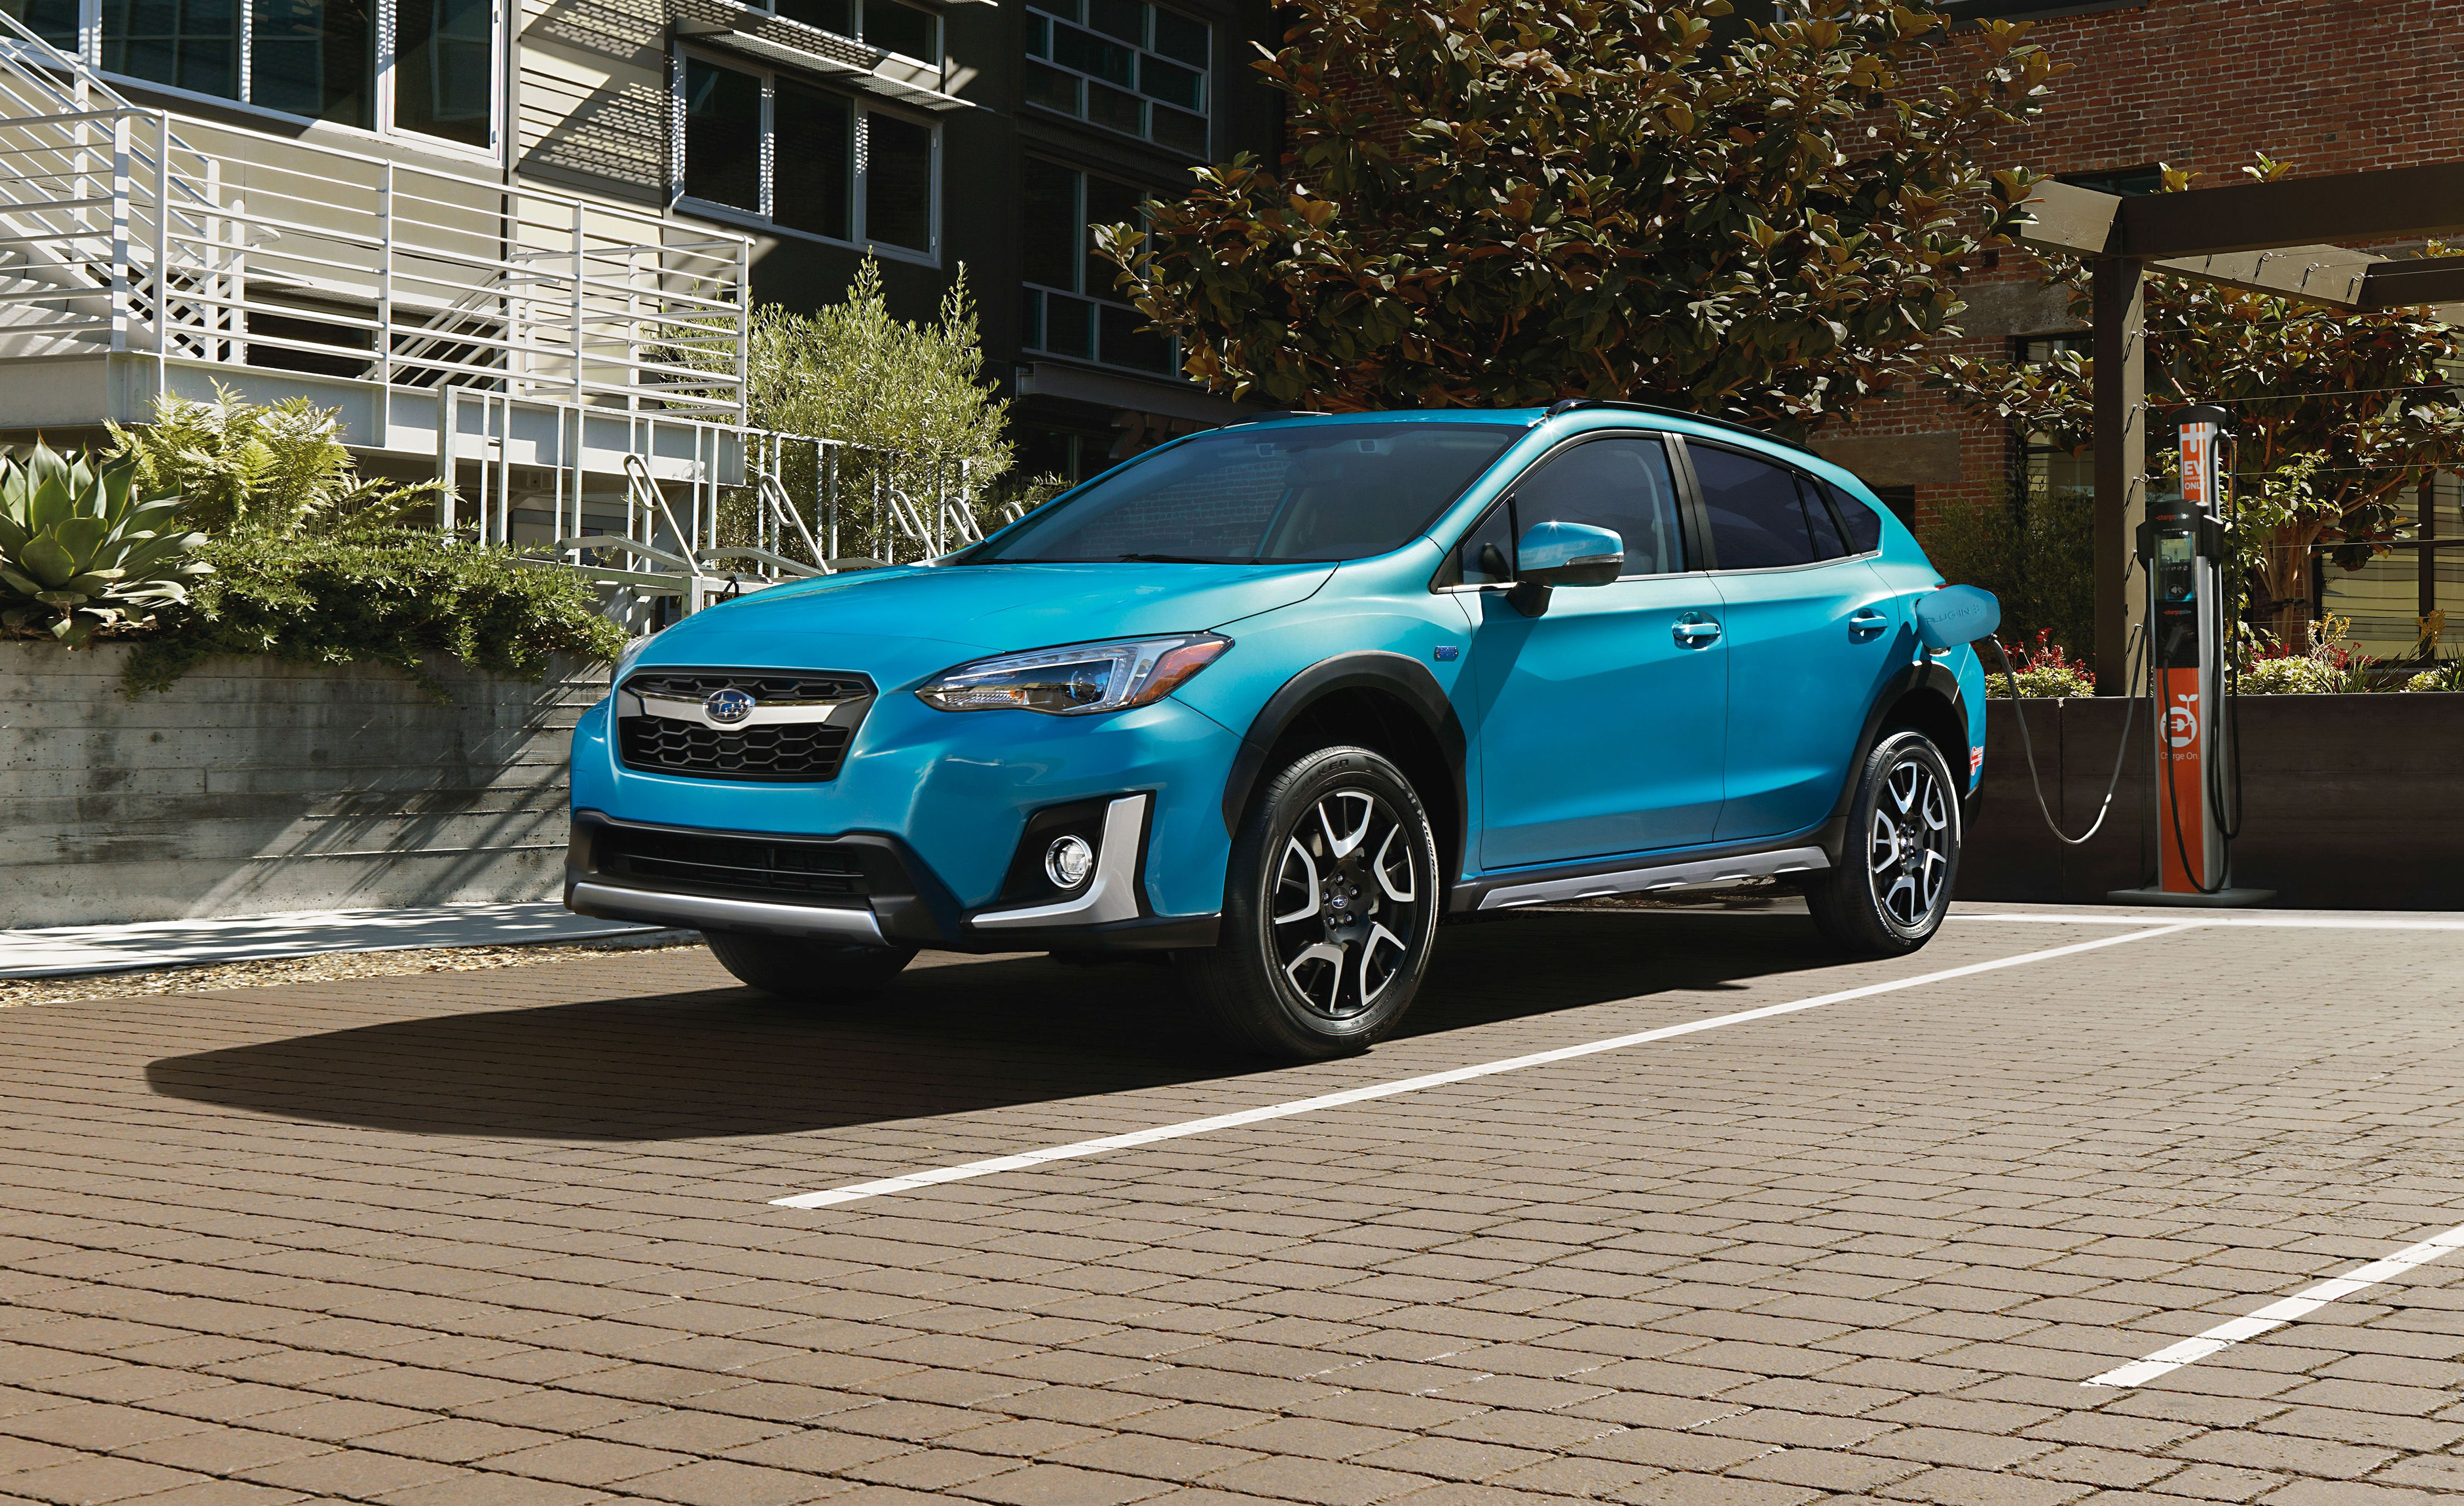 The 2019 Subaru Crosstrek Hybrid Is a Plug-In with a Premium Price